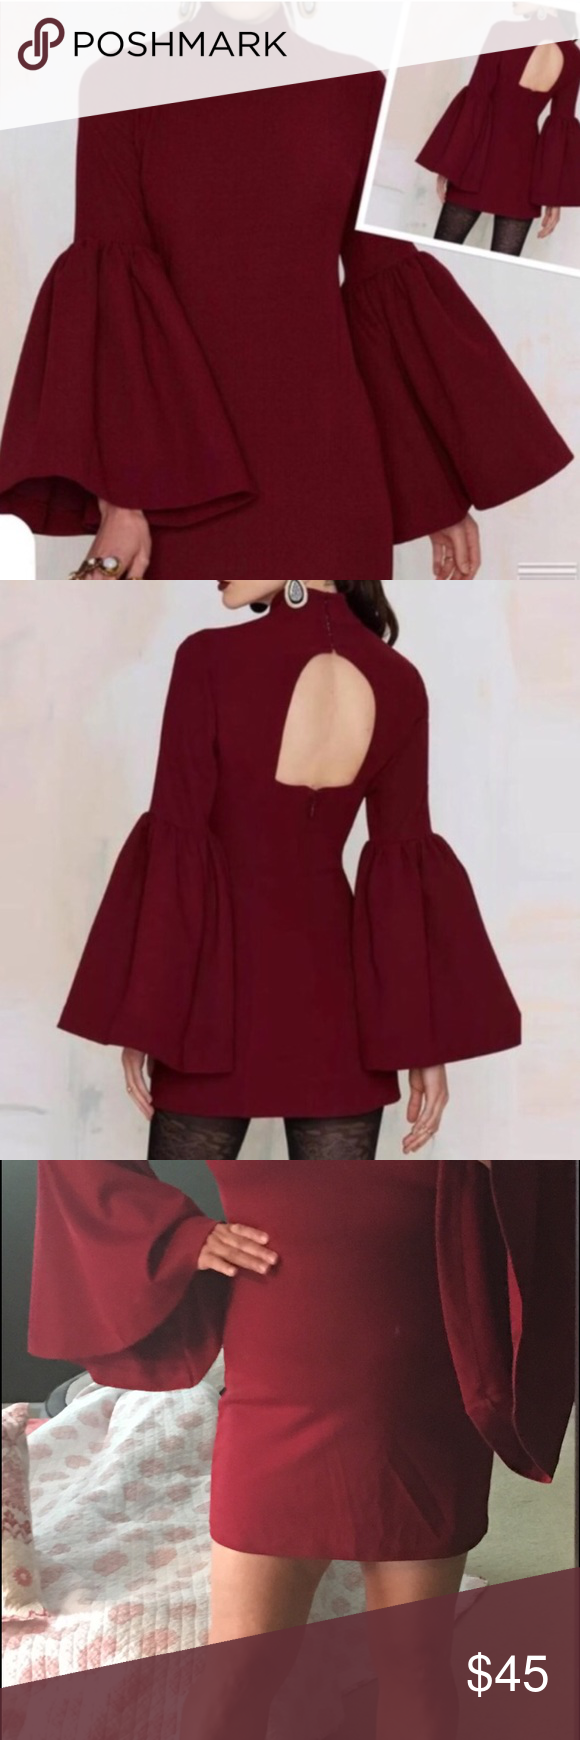 """NWT Deep Wine Color Bell Sleeve Mini Dress  - 14 Bell sleeves are the hot silhouette of Fall 2016. Burgundy is a classic color. This dress is gorgeous. It has a lot of stretch. Mid weight. Feels like polyester spandex material. Nice lay but with stretch and forgiveness. Close fitting with a small mock turtle neck and open back. Back zip with hook and eye closures at the neck. The sleeves are what makes it. Can be worn as a tunic also. It's short. Best for petite. I'm 5'3"""". It's clearly a…"""